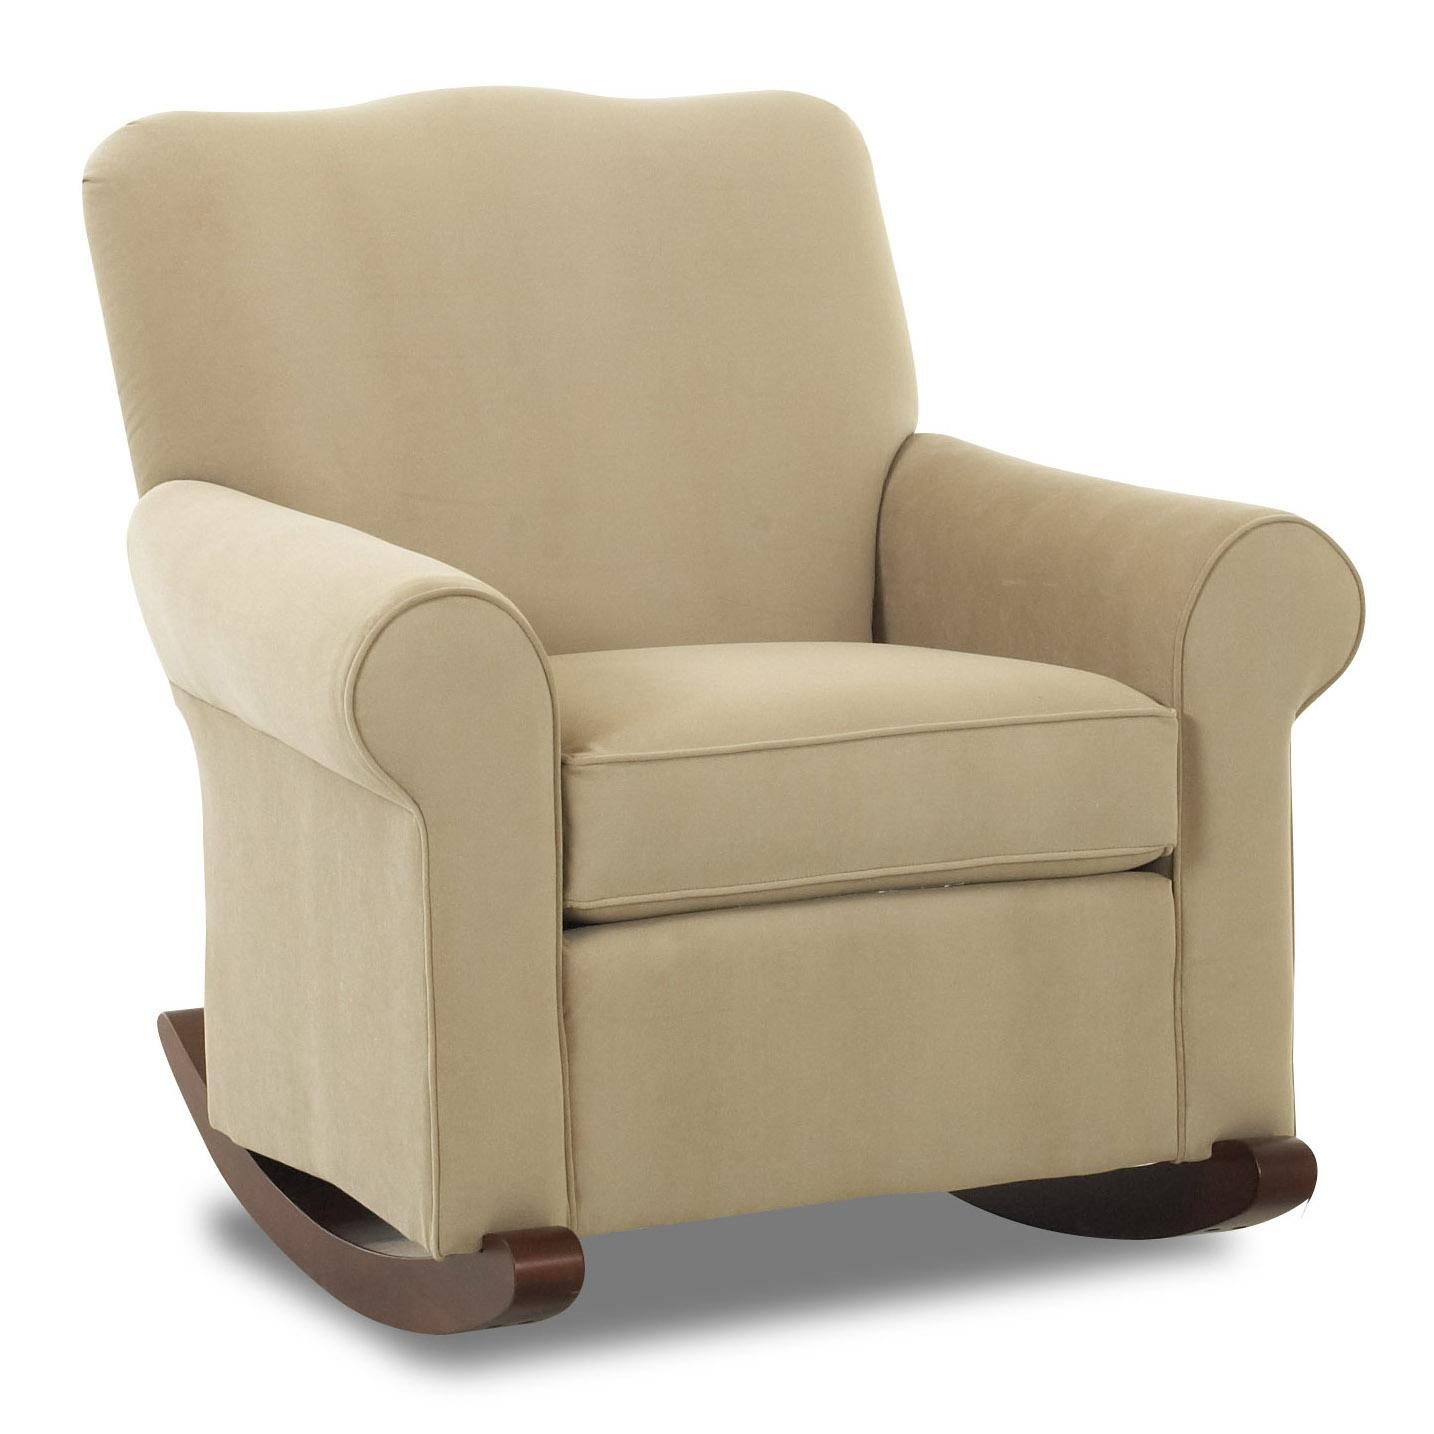 Klaussner Chairs And AccentsOld Town Rocking Chair ...